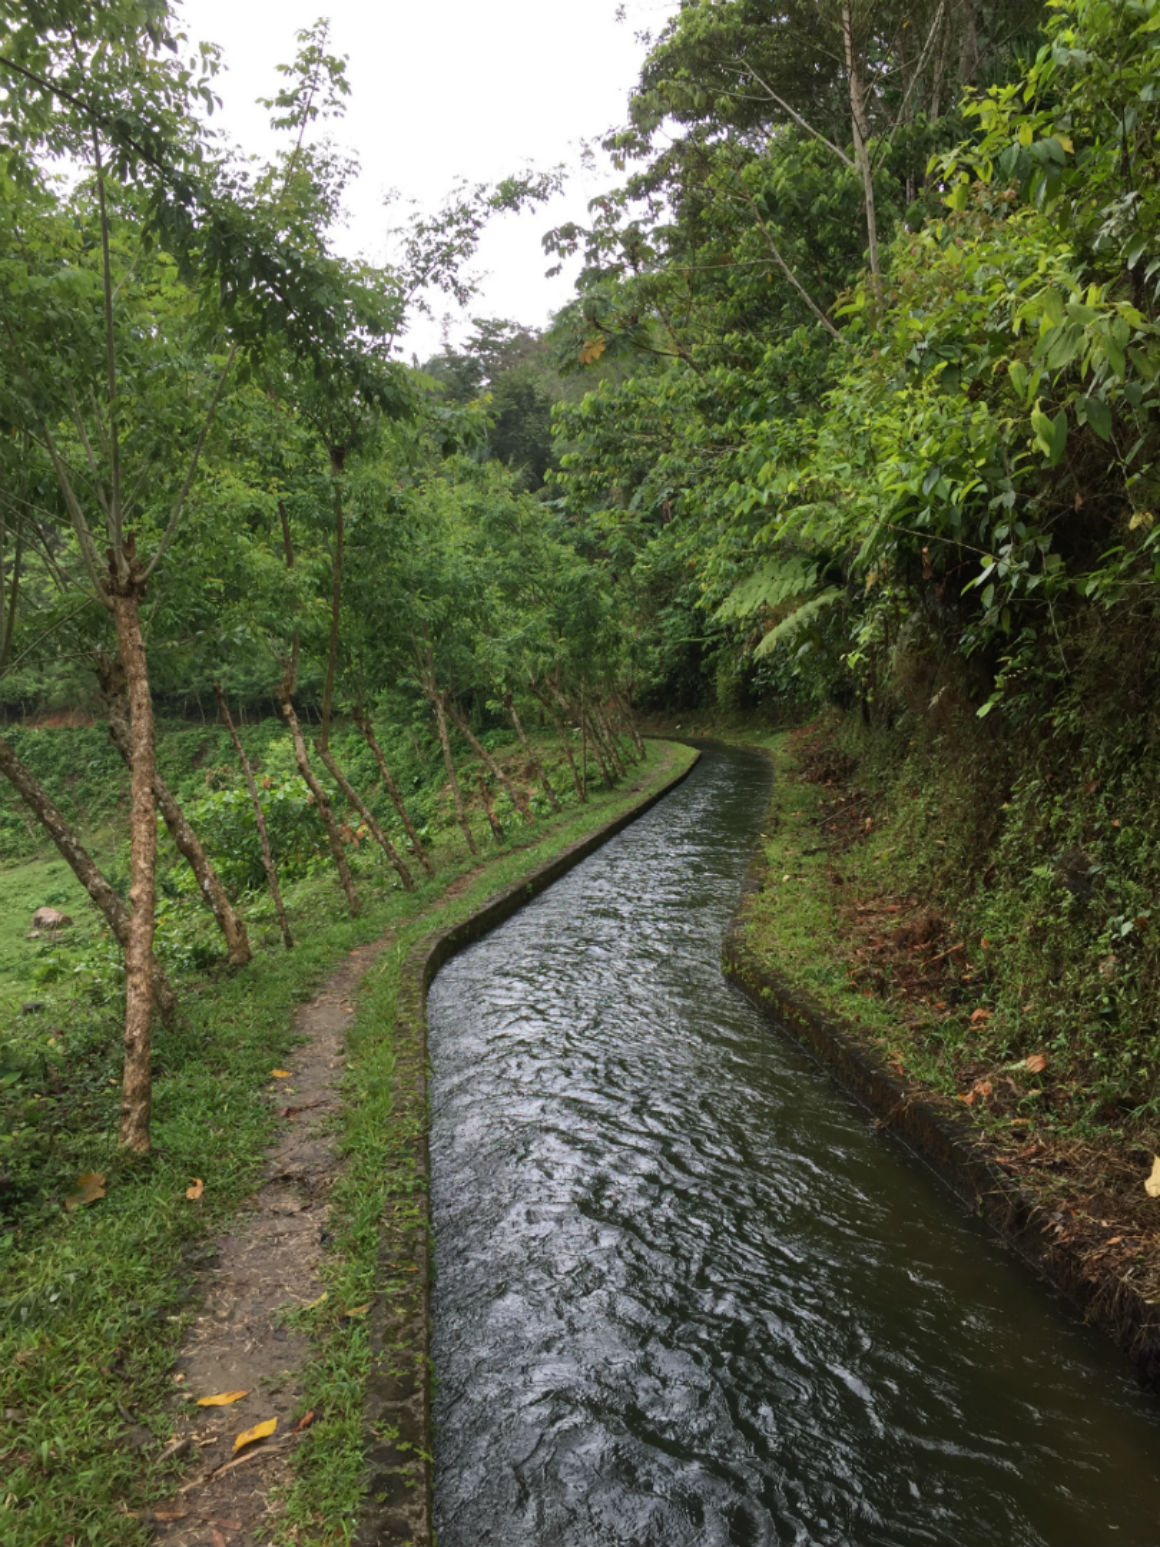 Canal of water built as part of the hydro project near Omoa, Honduras